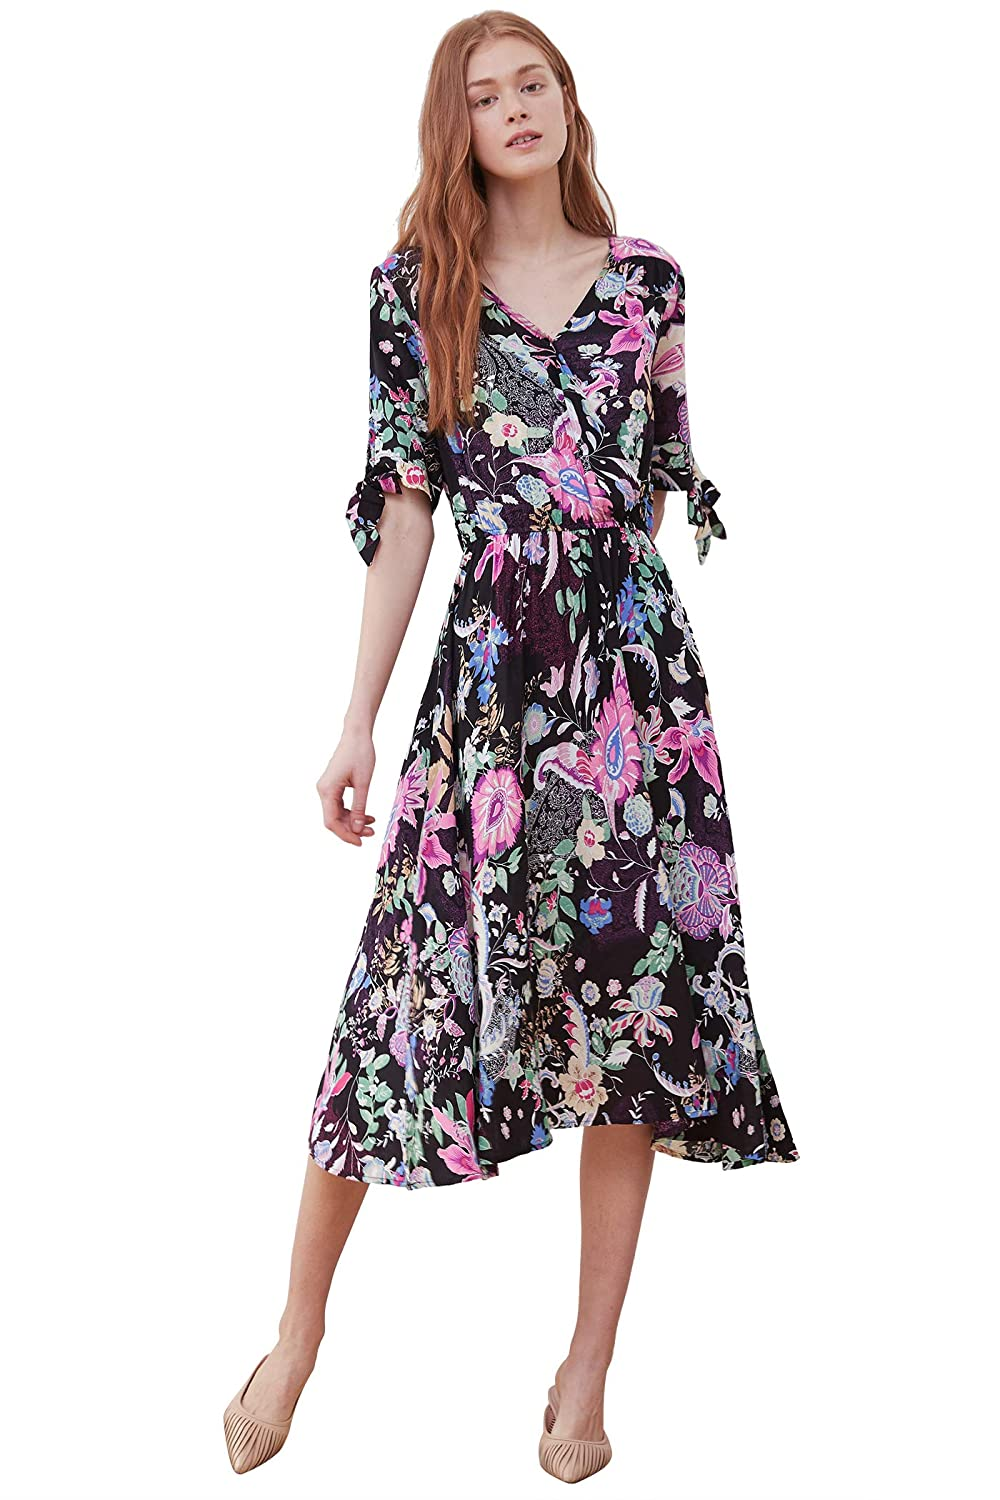 6744e98714c Pintage Women s Summer Boho Midi Wrap Dress at Amazon Women s Clothing  store